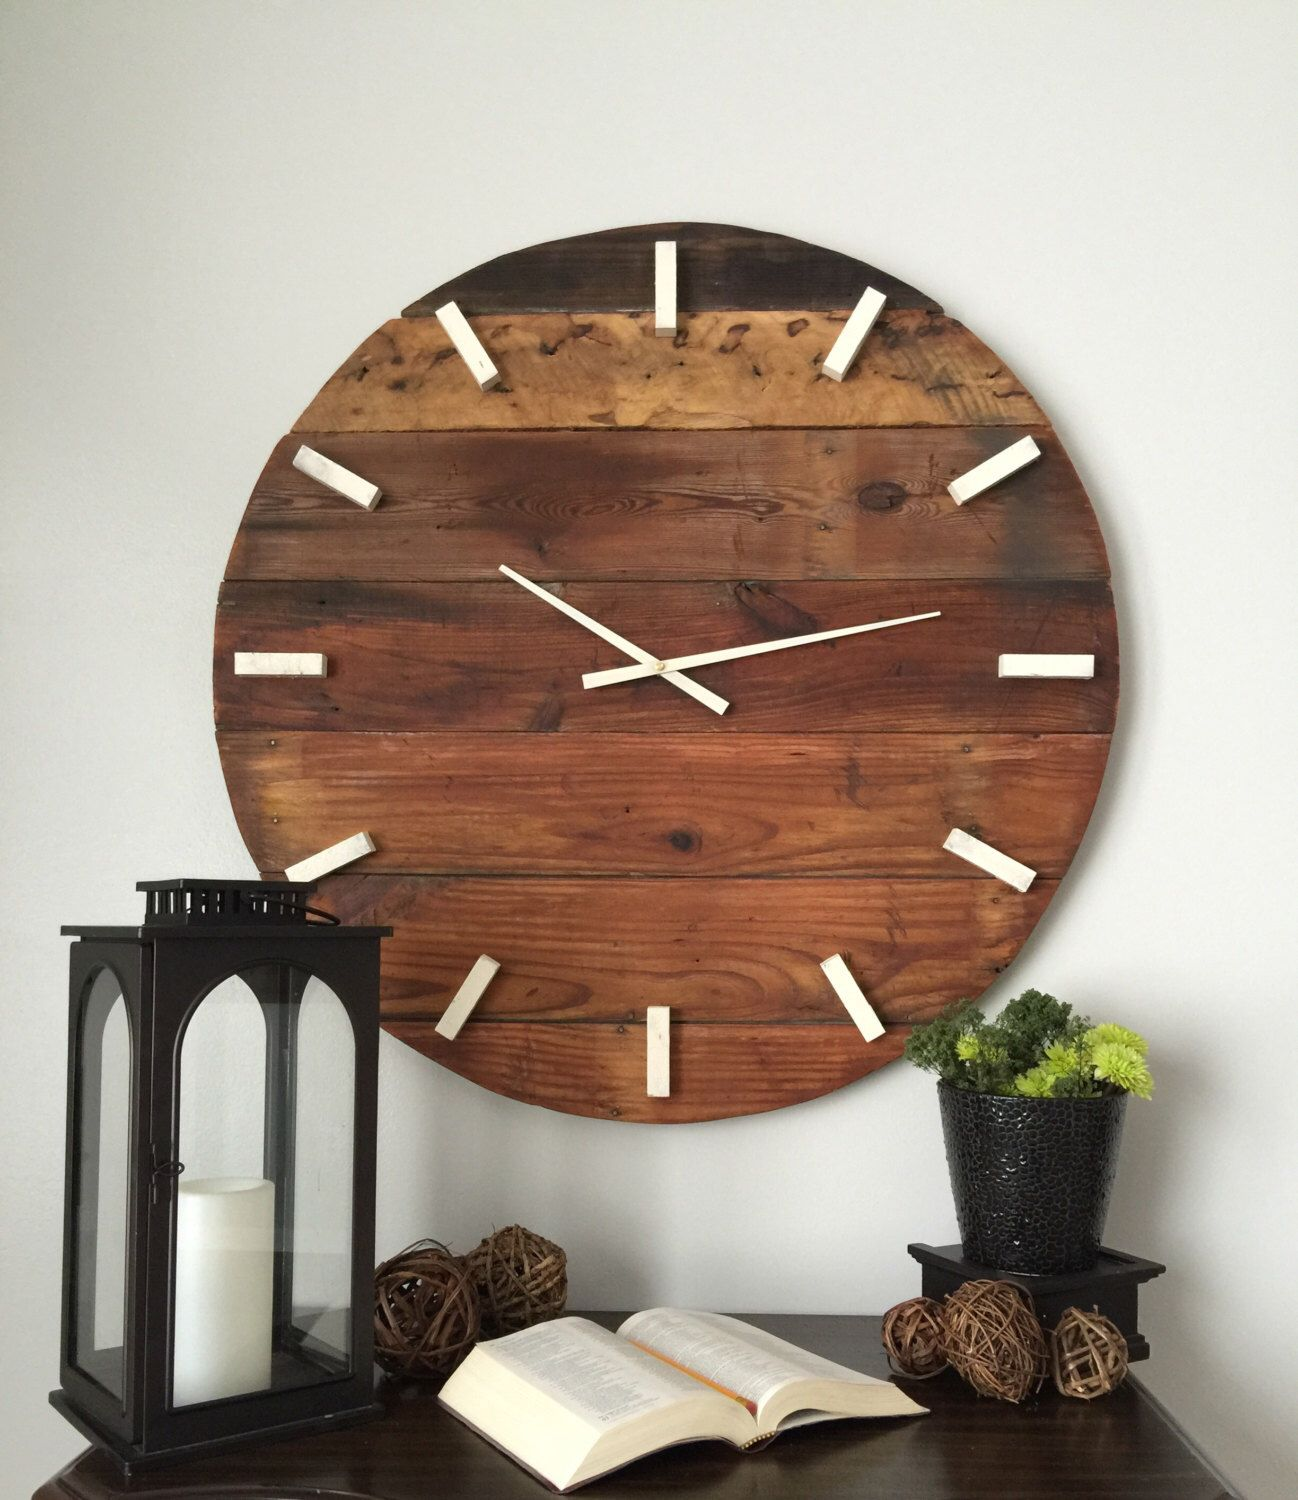 Rustic wall clock oversized wall clock large wall clock 31 inch rustic wall clock oversized wall clock large wall clock 31 inch wooden clock amipublicfo Gallery